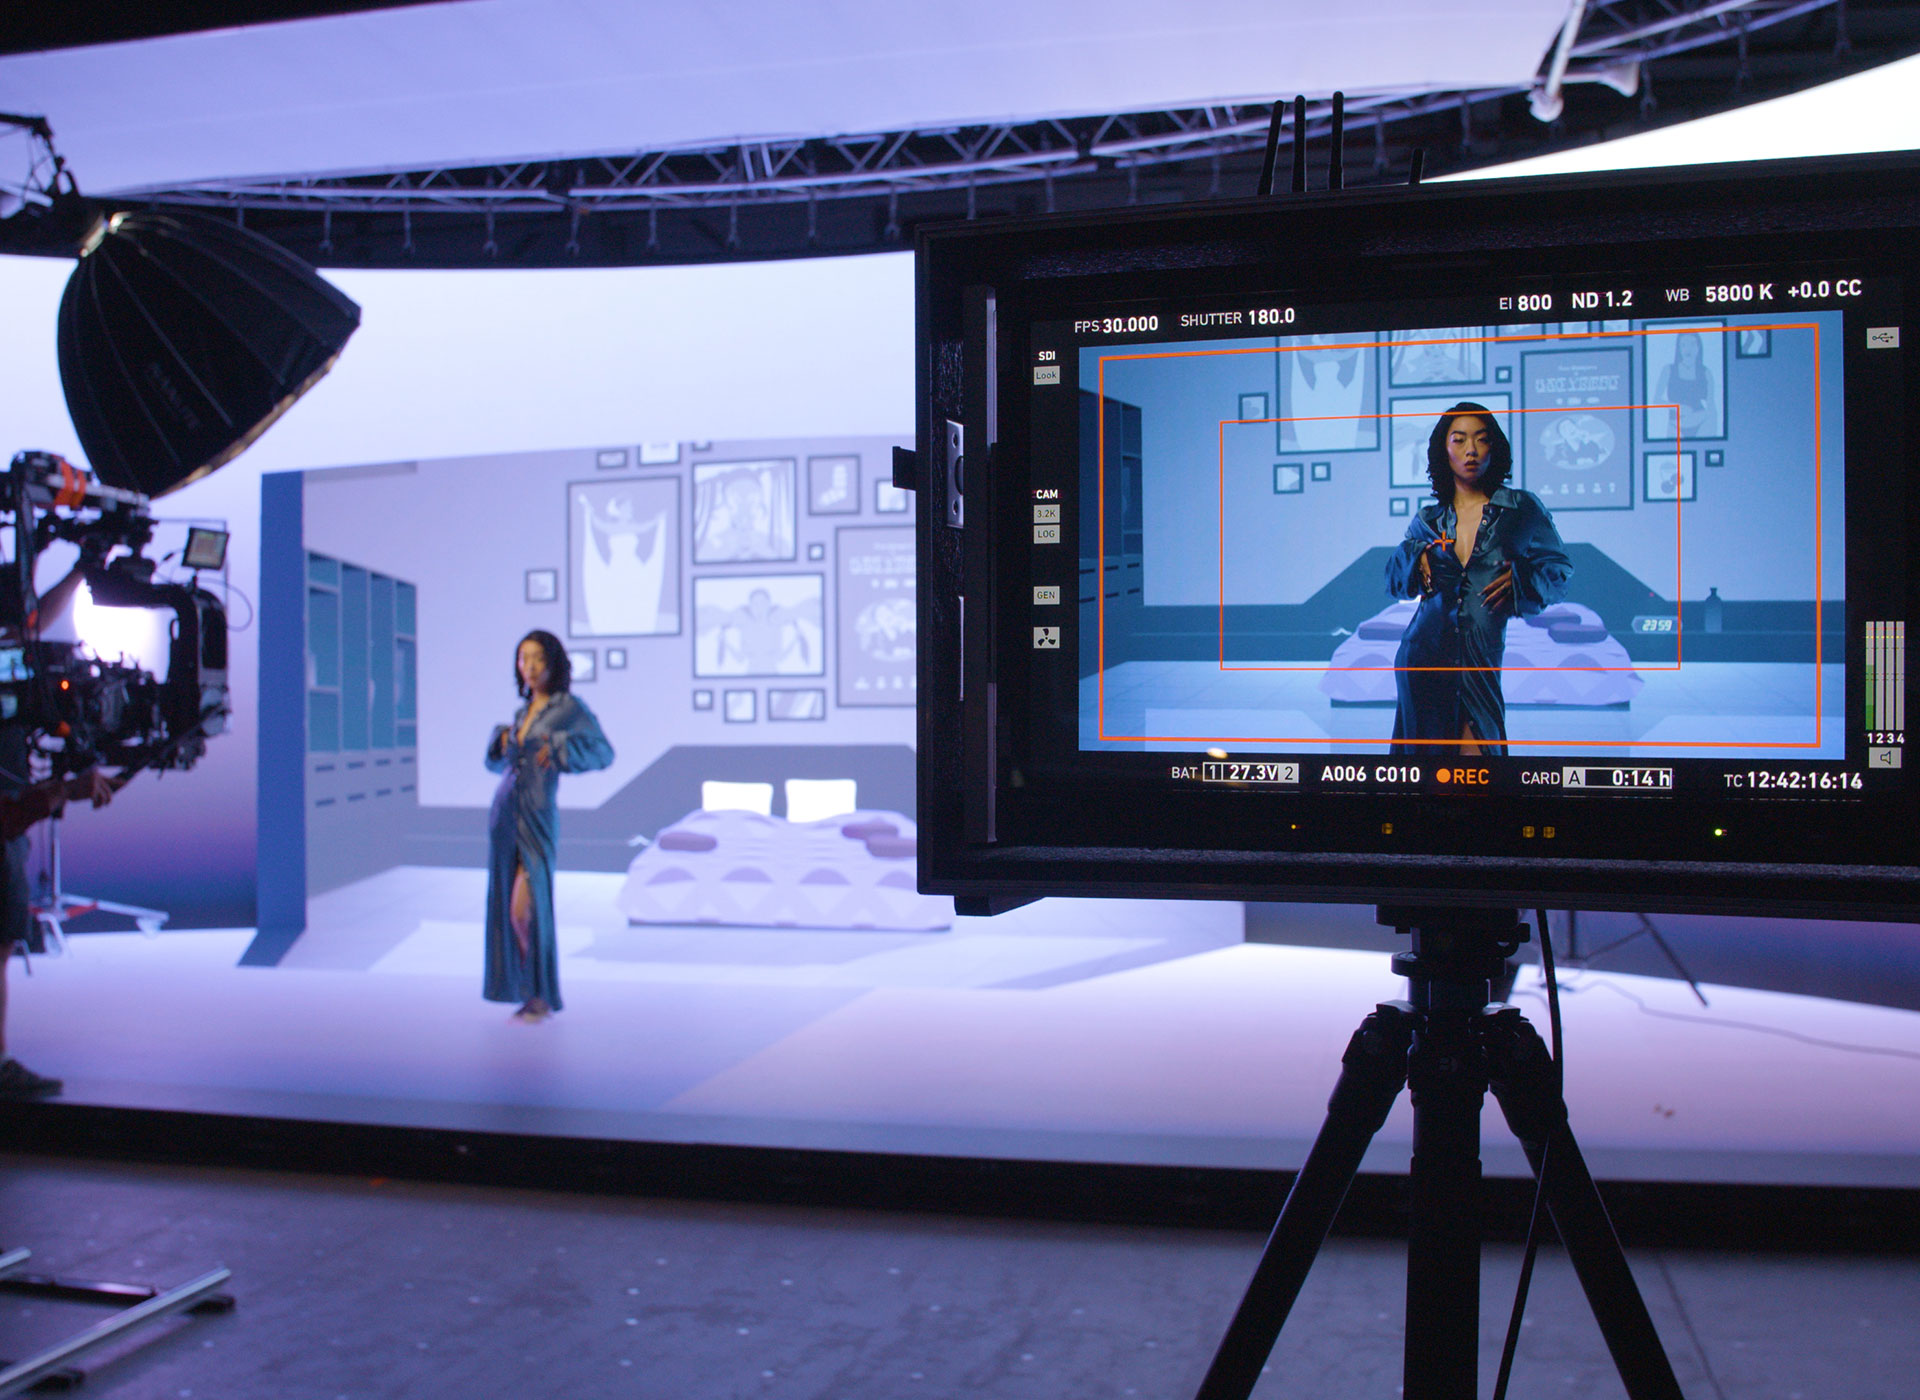 Mixed reality gets creative boost with purpose-build studio